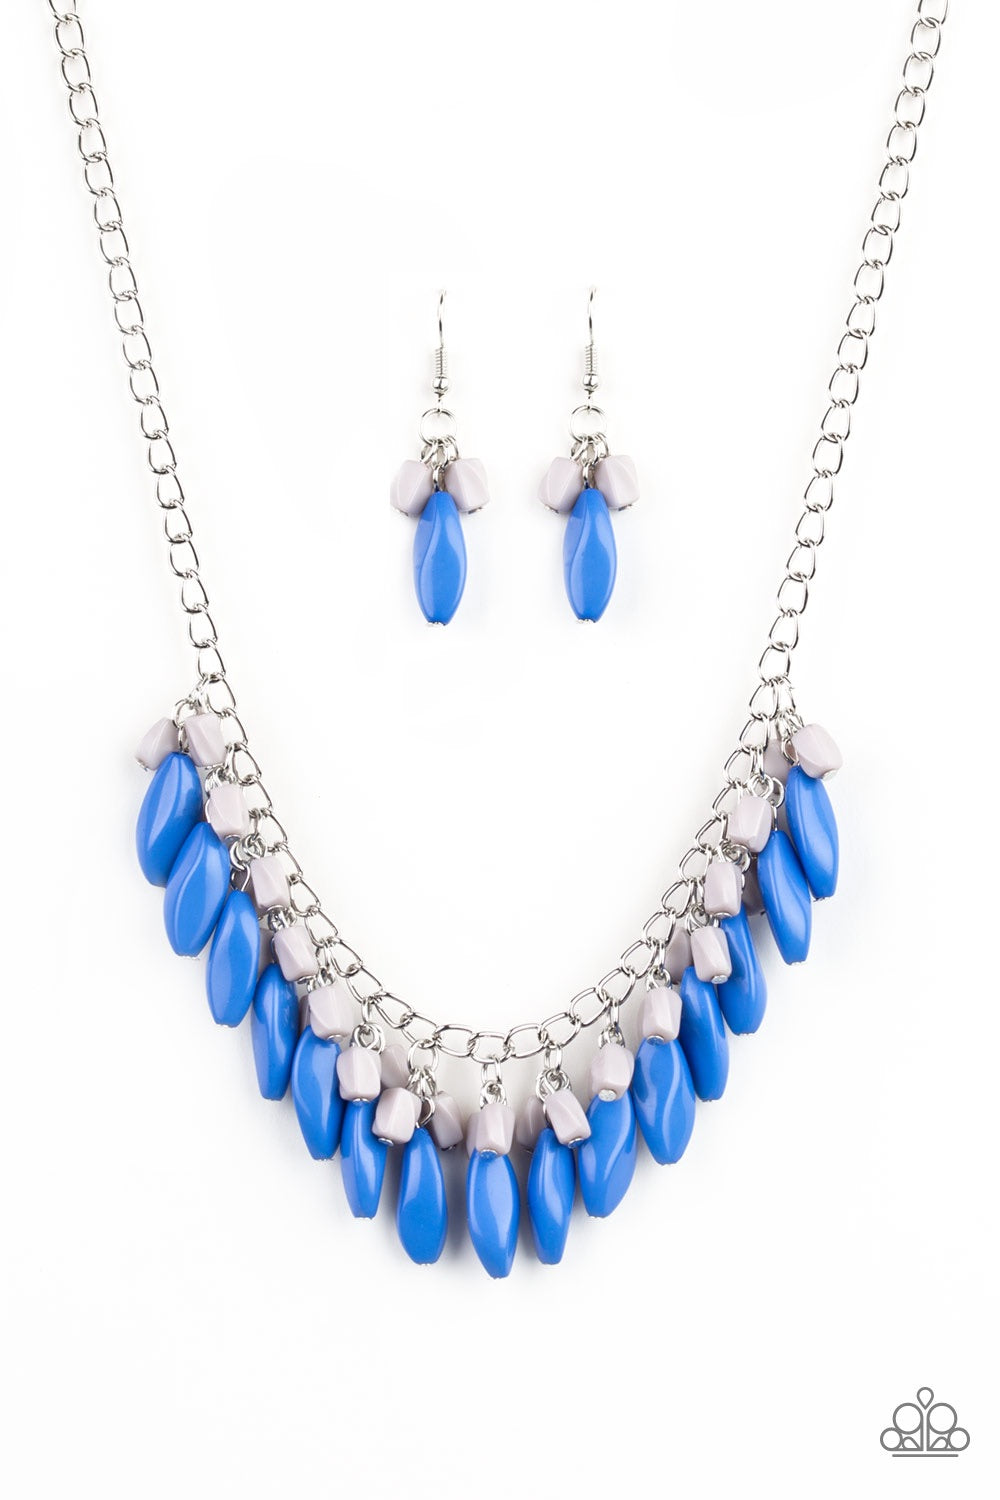 Paparazzi Bead Binge - Blue Necklace N-B21